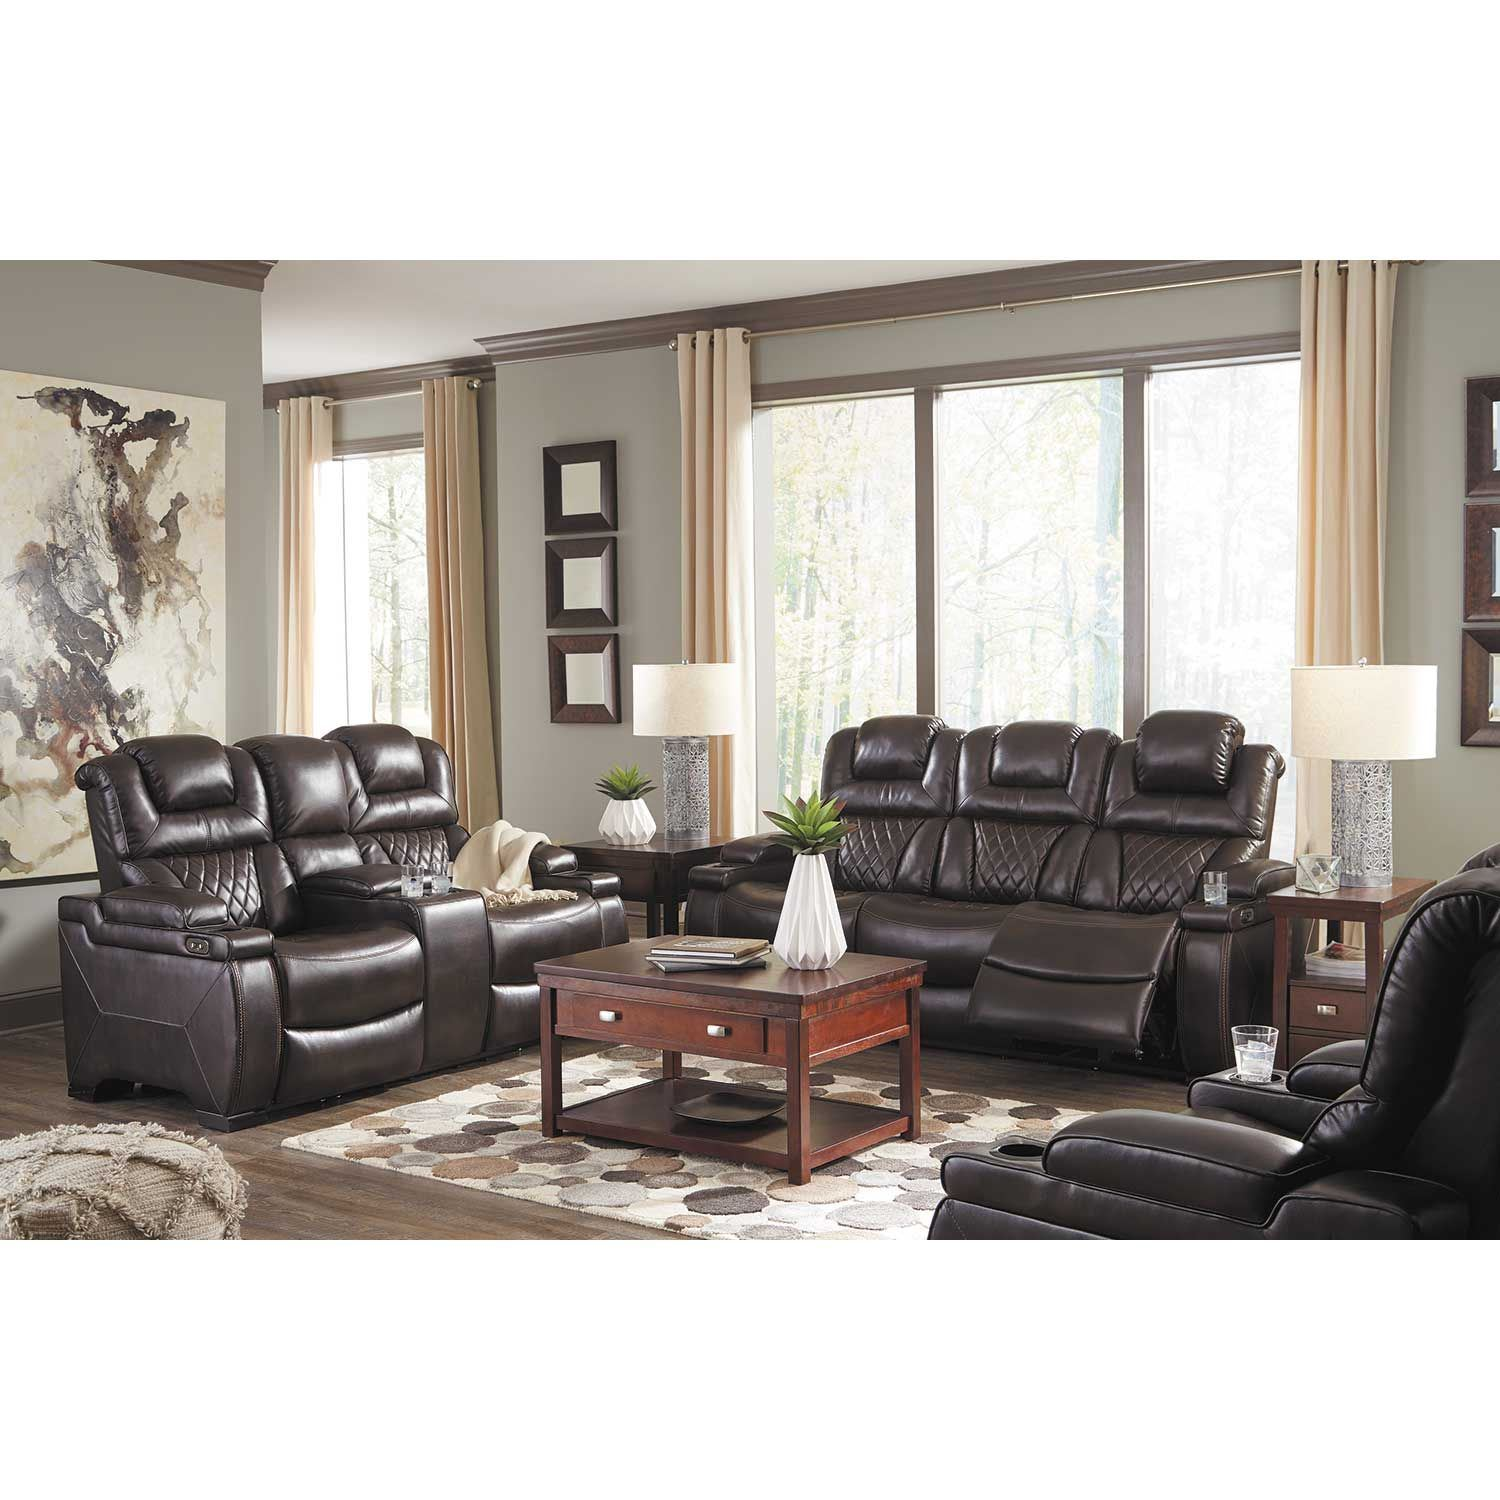 Warnerton Power Reclining Sofa With Drop Table